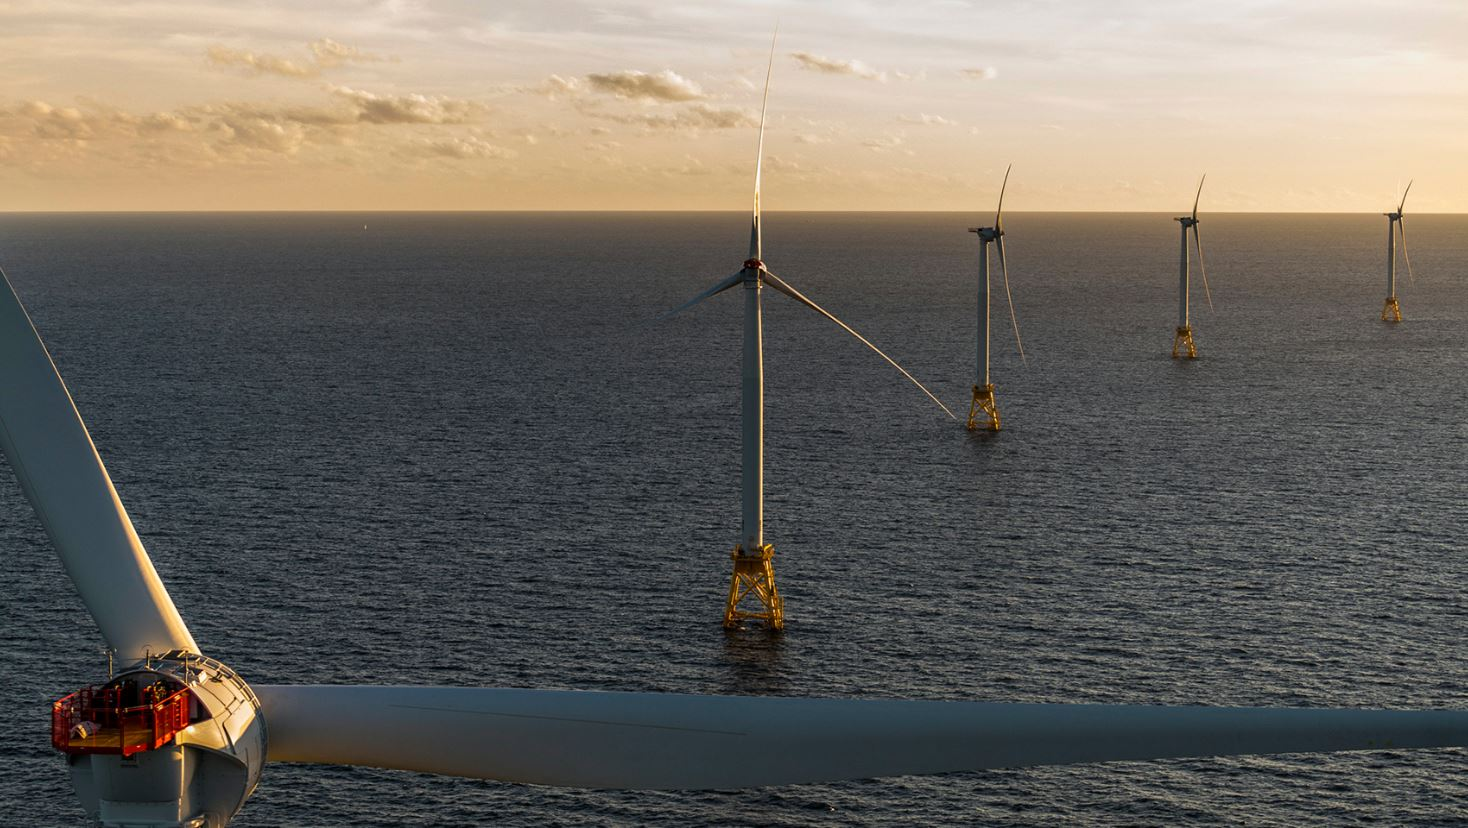 'World's largest' turbines to be used at Dogger Bank Wind Farm